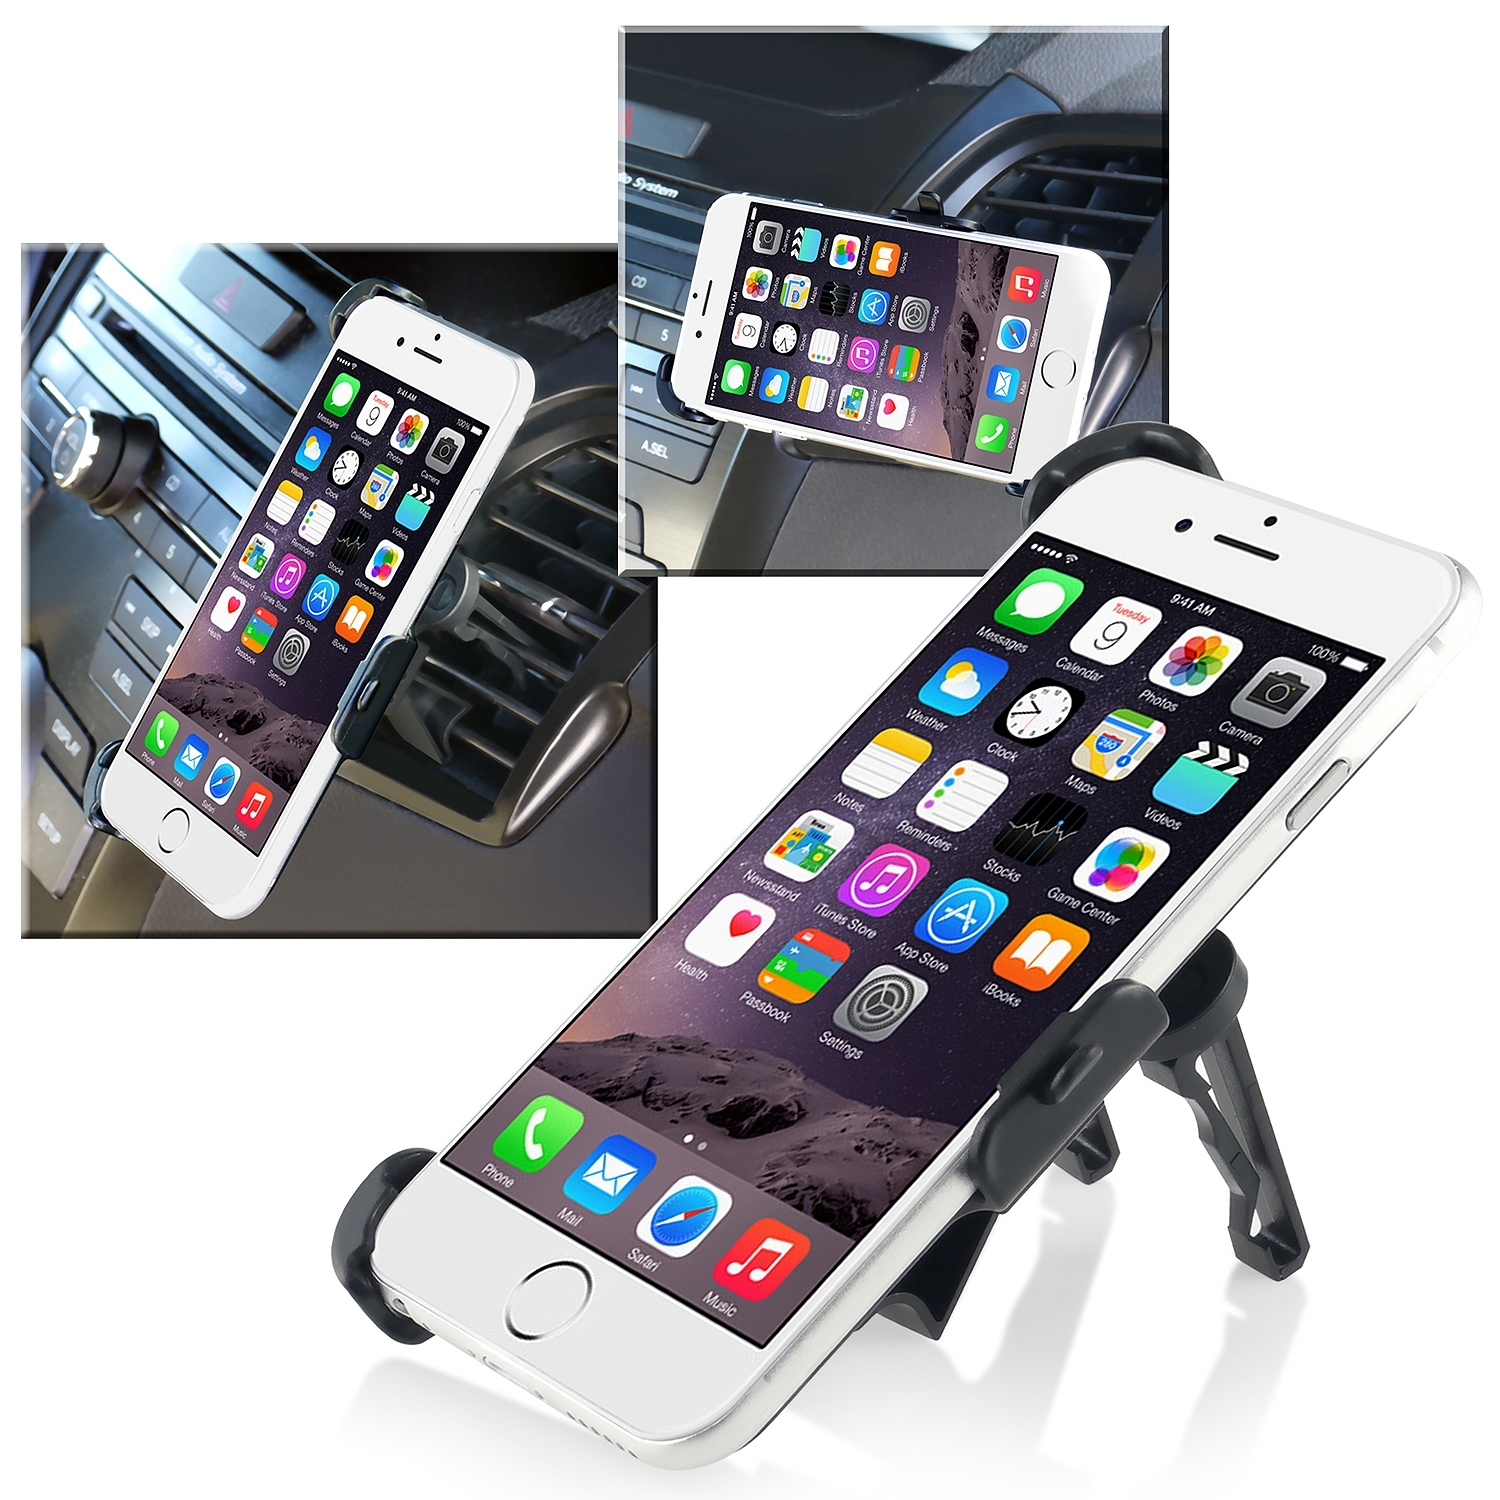 "Insten Car Air Vent Mount Phone Holder Cradle For Apple iPhone 6S 6 4.7"" (Perfect fit)"